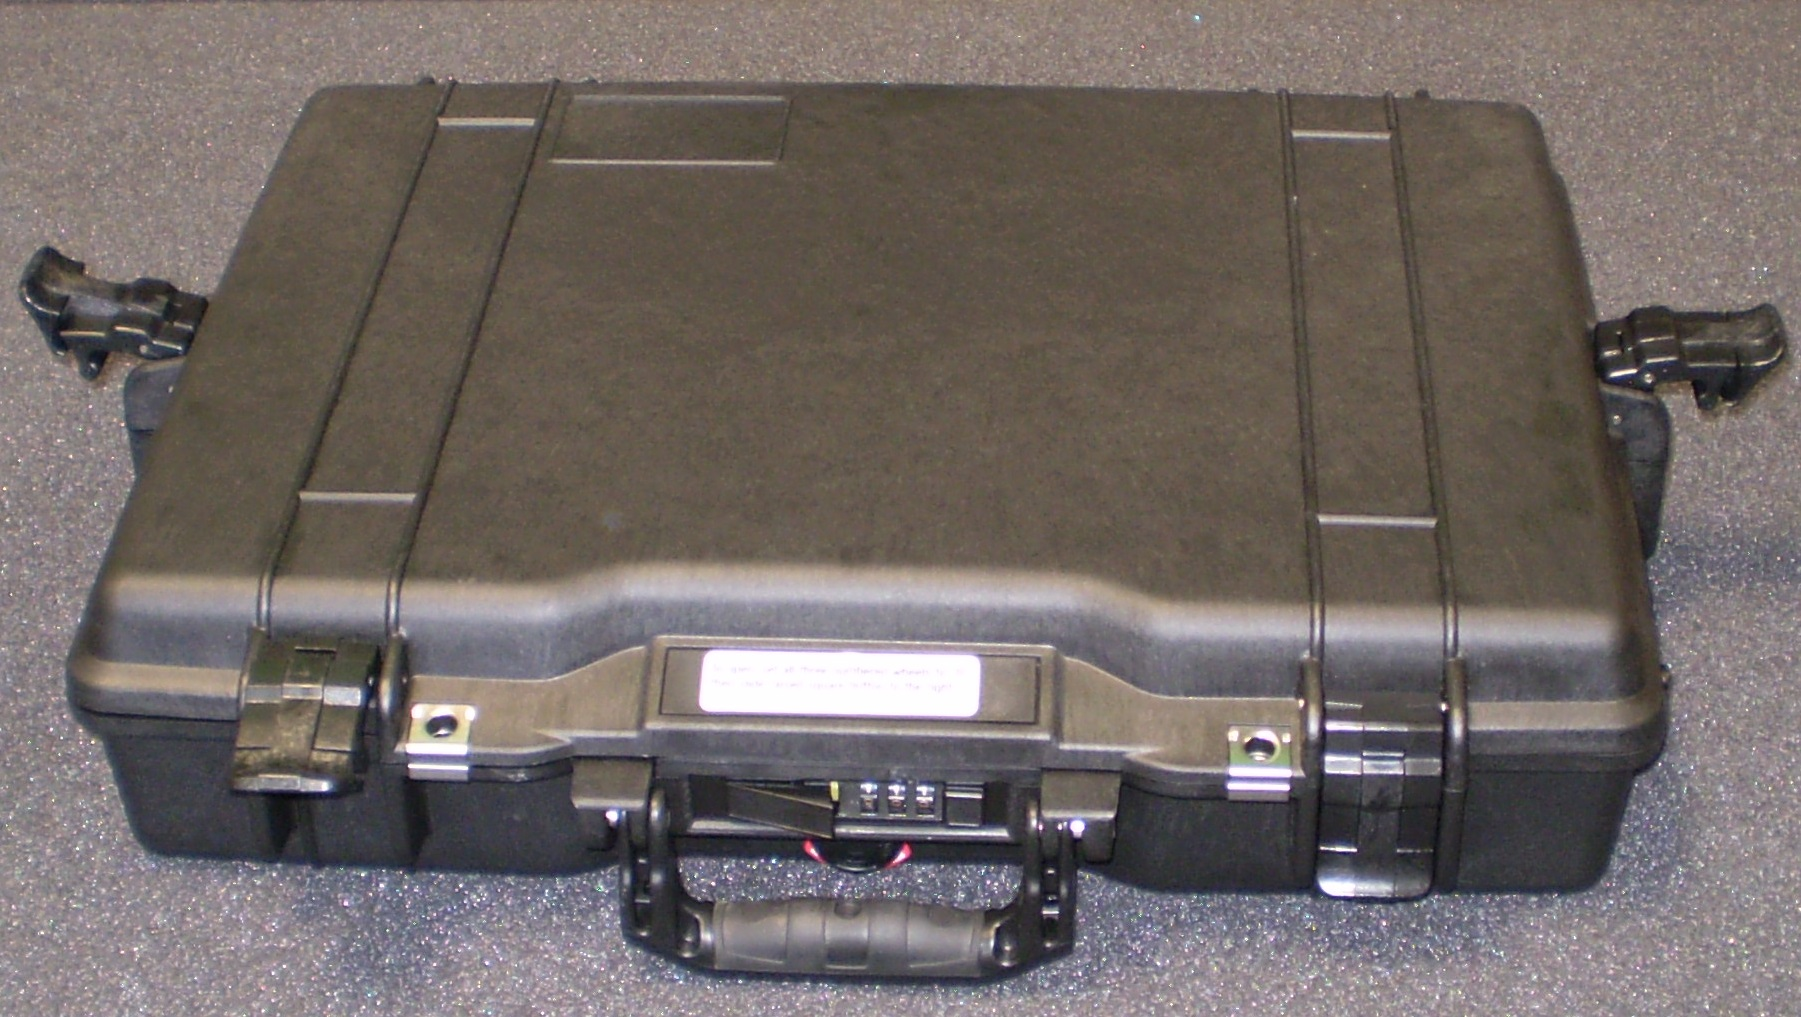 Print # 6103 - Pelican 1495 Case with Custom Foam Insert to hold (2)Circuit Boards MX-HDMI-3D-OB-A By Nelson Case Corp